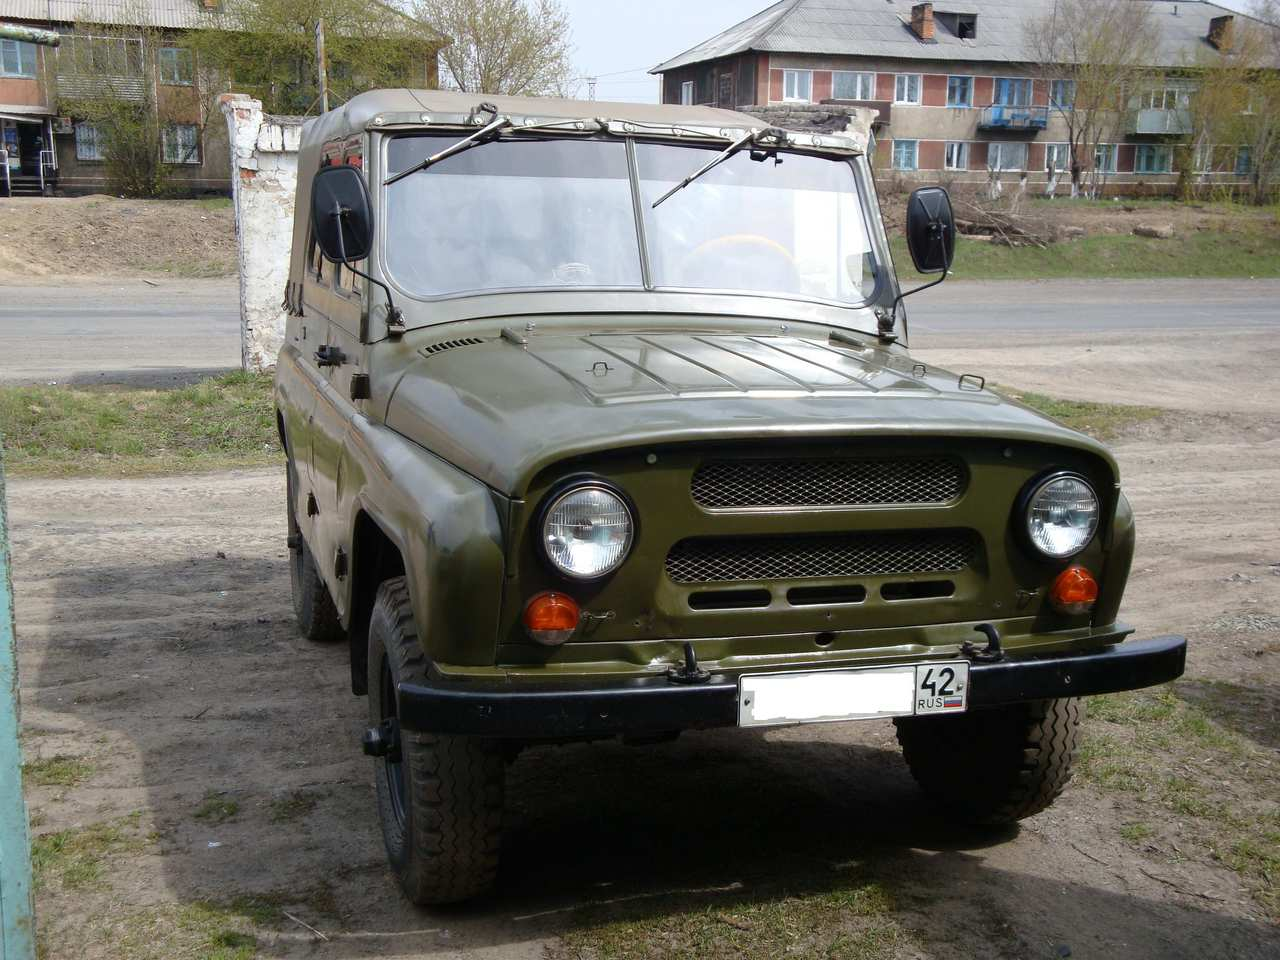 1973 uaz 469 photos 1 5 gasoline manual for sale. Black Bedroom Furniture Sets. Home Design Ideas